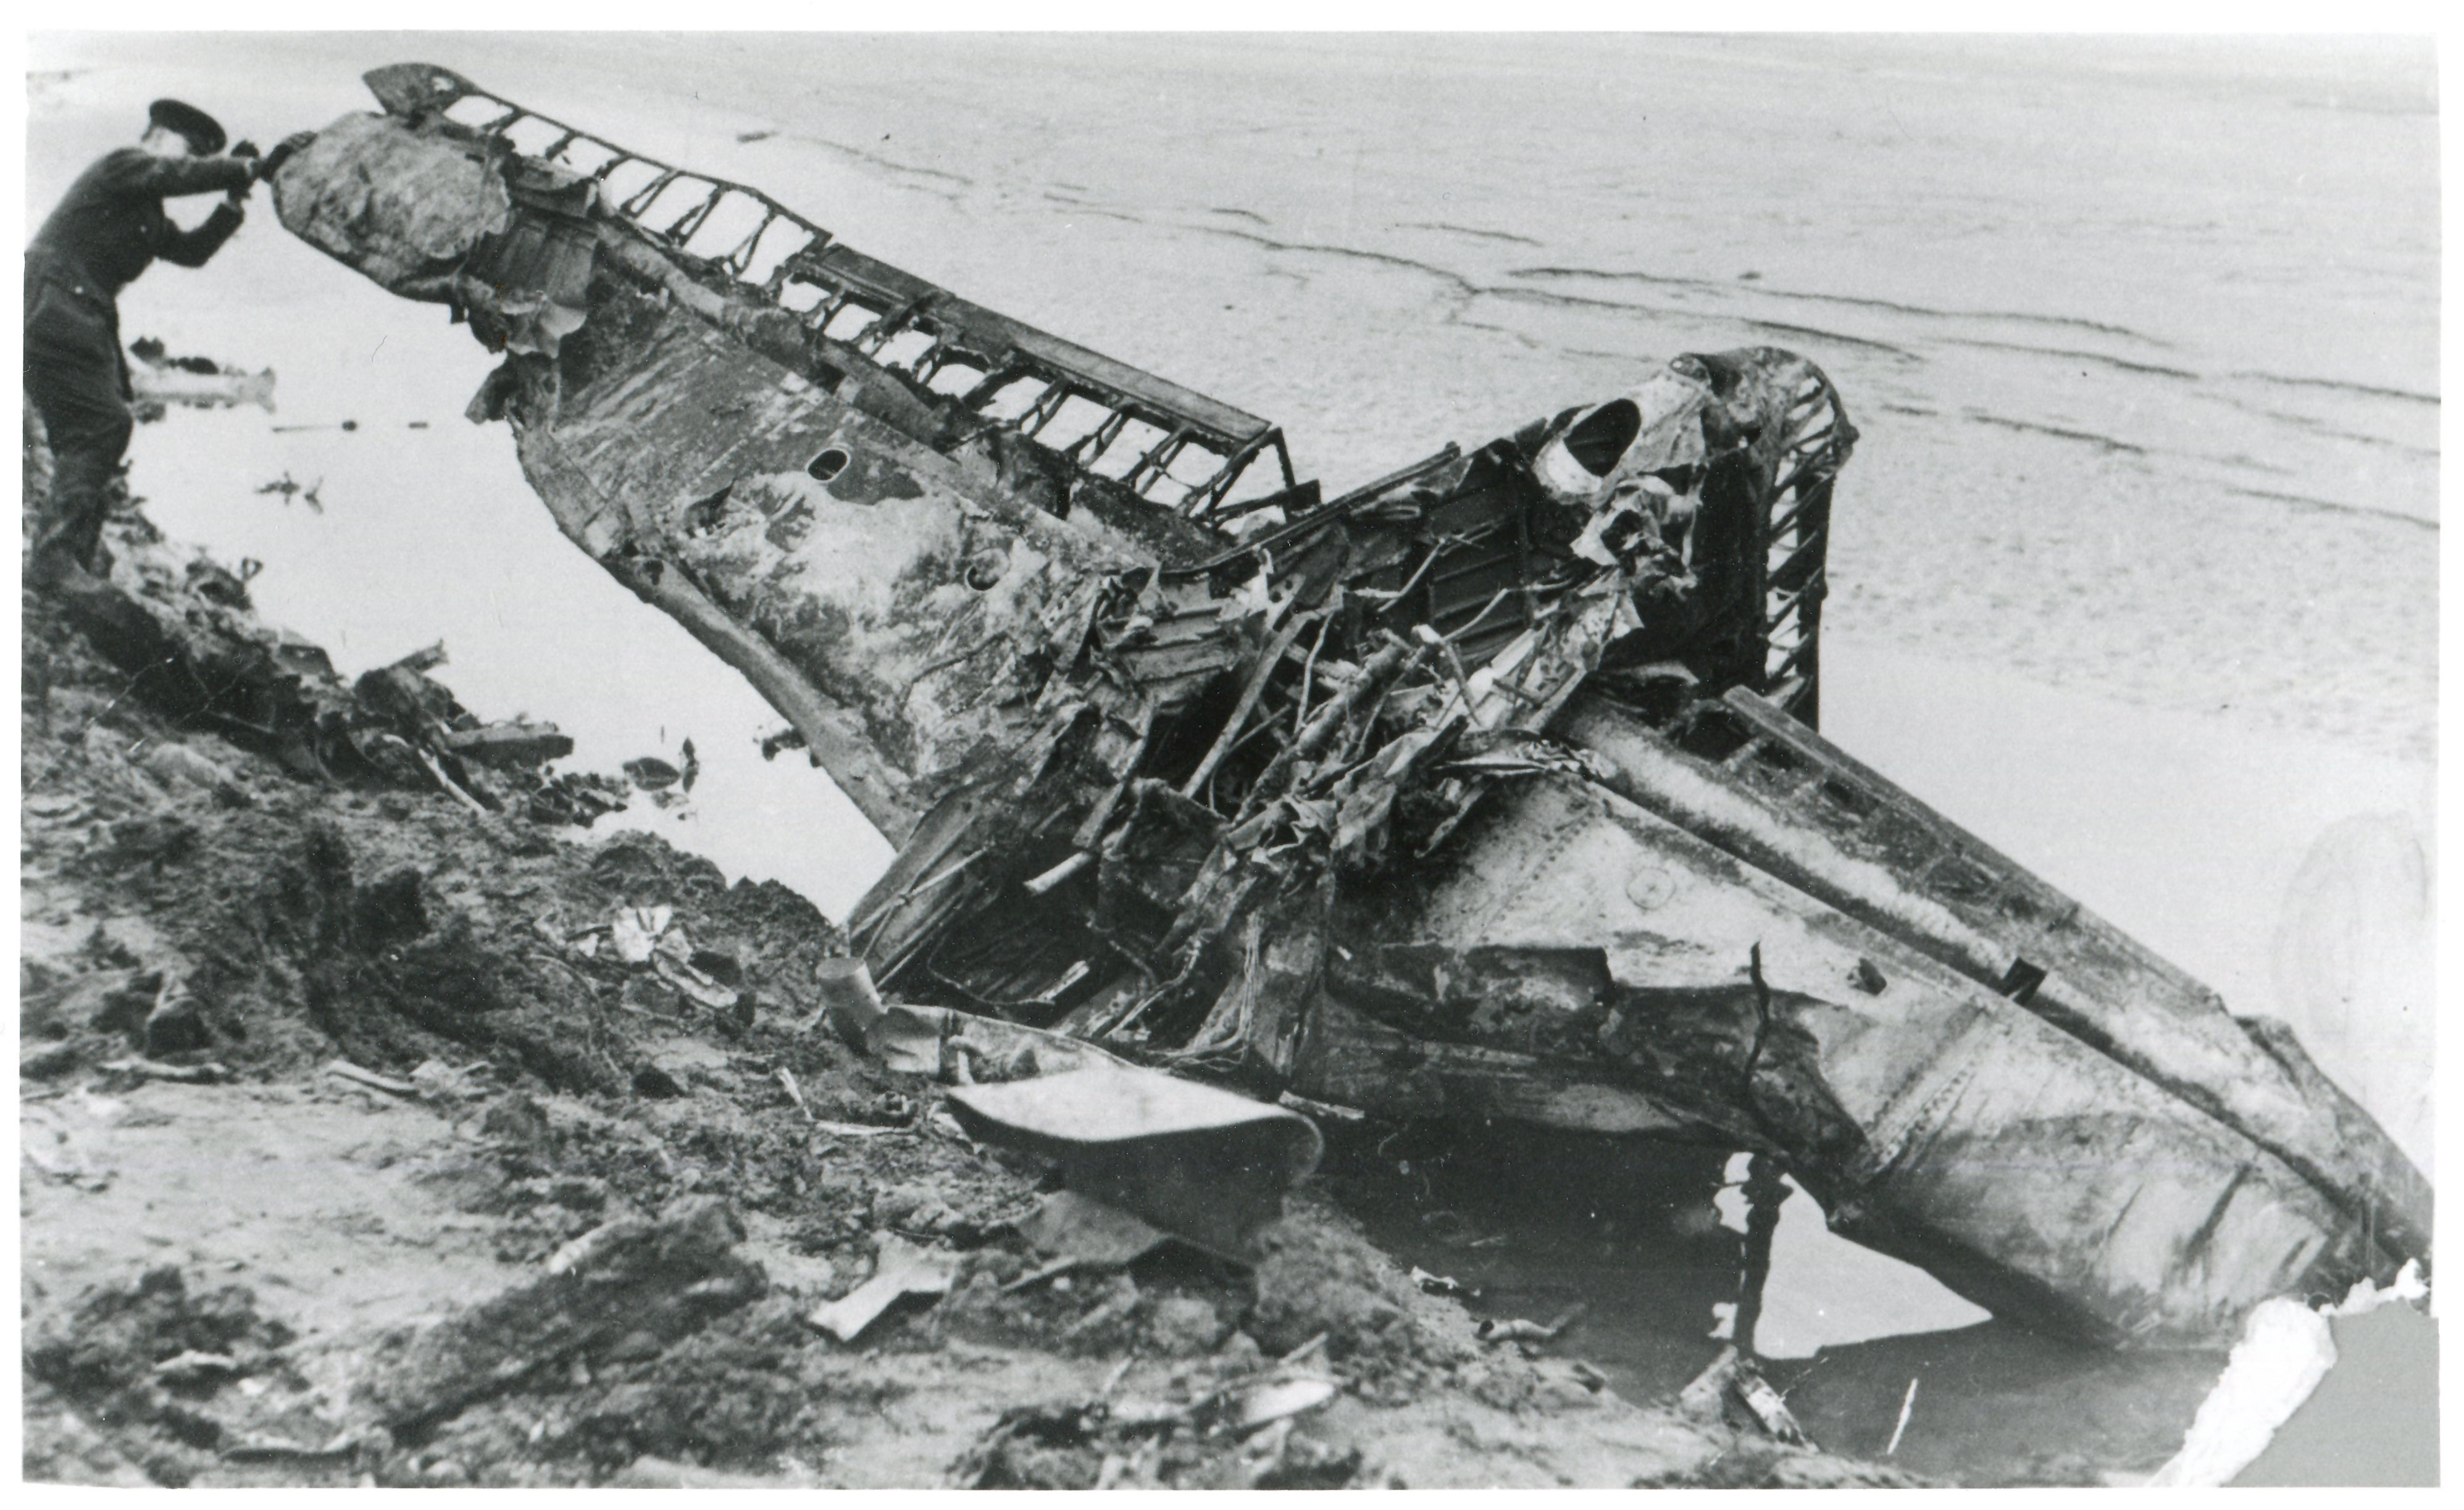 he largest recognisable section of the Ju88 after the crash - amazingly this proved to still be there, though only the anodised sections of the spars and structure had survived. (Photo: Russell Brown Collection)